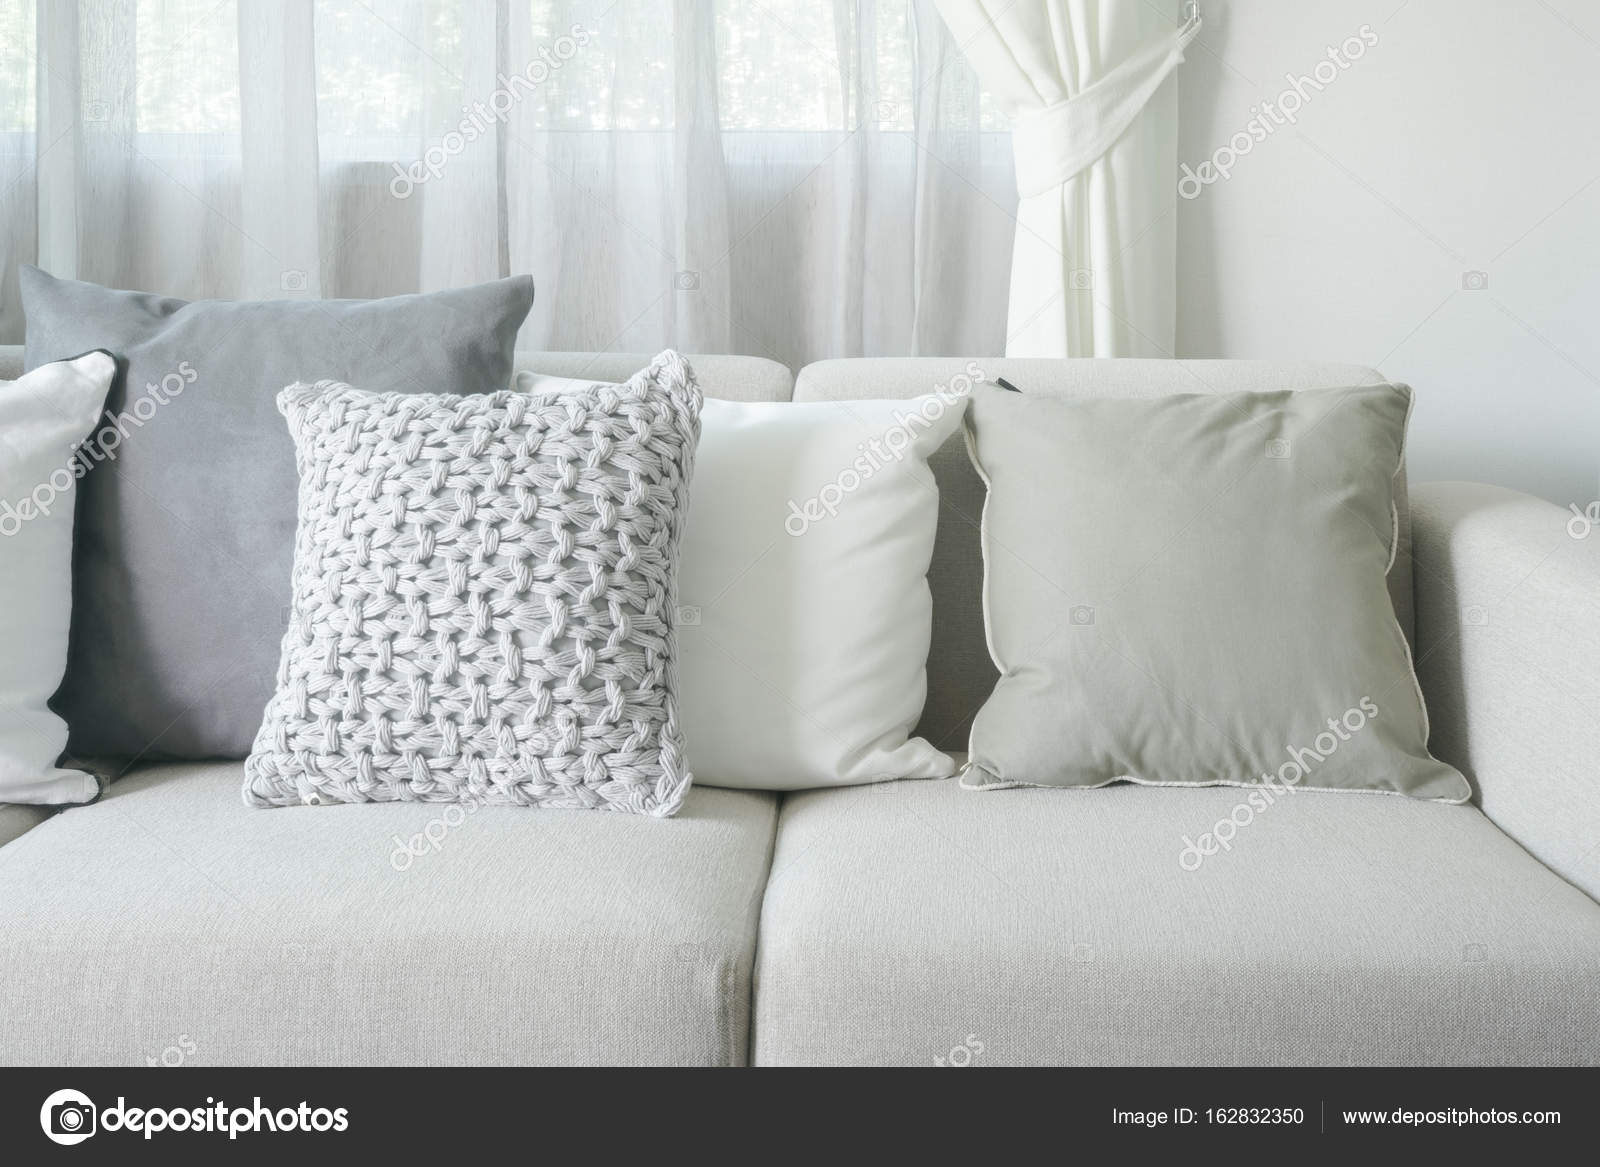 Light Gray Sofa Set With Pillows In Modern Interior Living Room